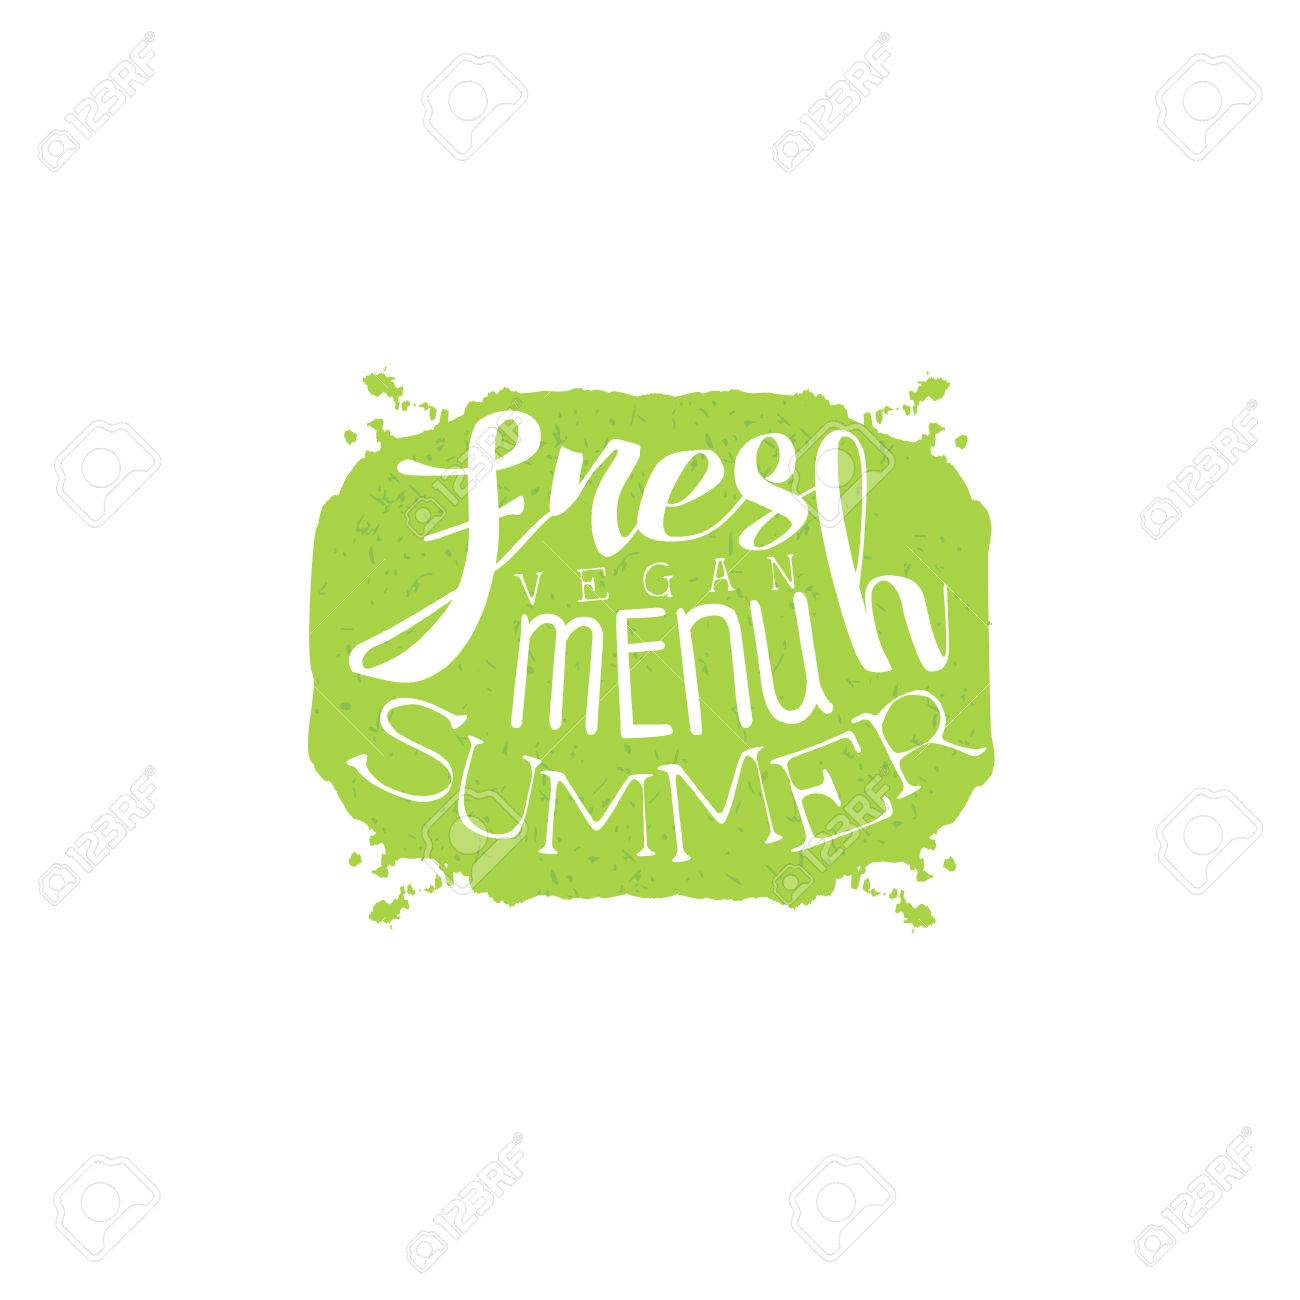 fresh summer menu calligraphic cafe board vegetarian cafe new menu promotion banner cool calligraphic buy fresh cool summer